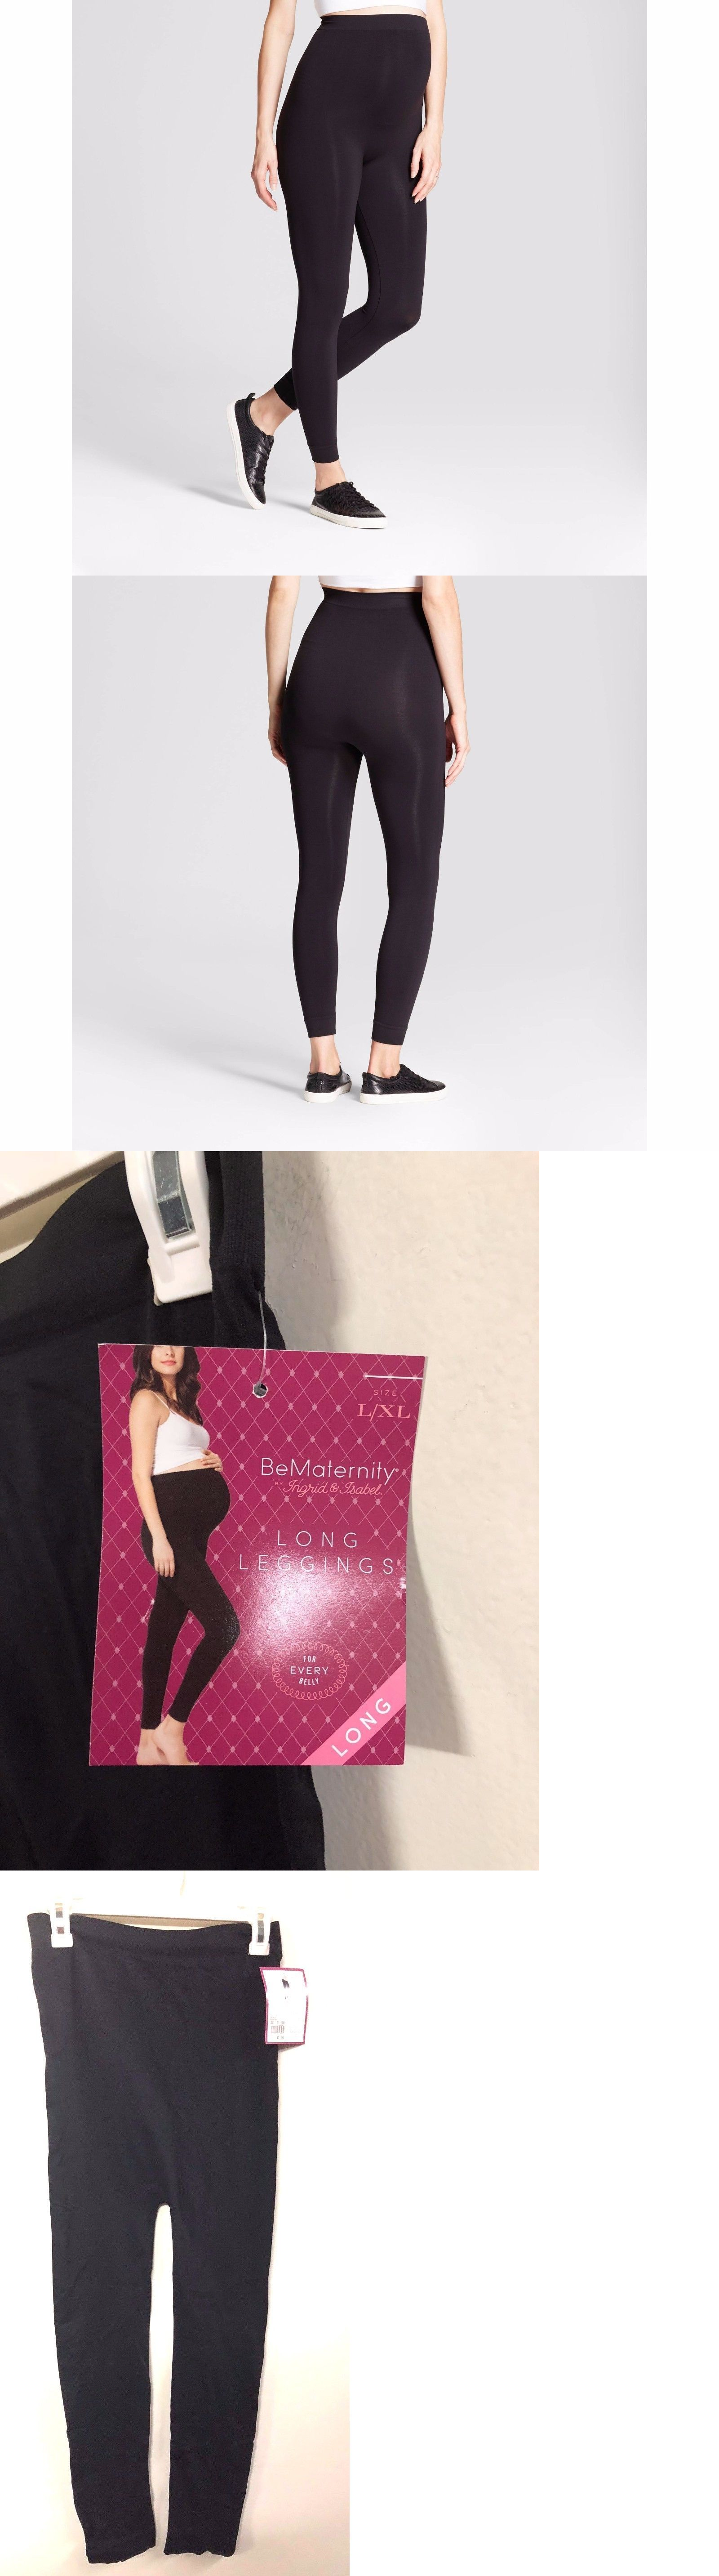 c72f5b53a5294 Leggings 46809: Nwt Bematernity By Ingrid And Isabel Yoga Black Seamless  Belly Leggings L Xl -> BUY IT NOW ONLY: $12.99 on #eBay #leggings  #bematernity ...